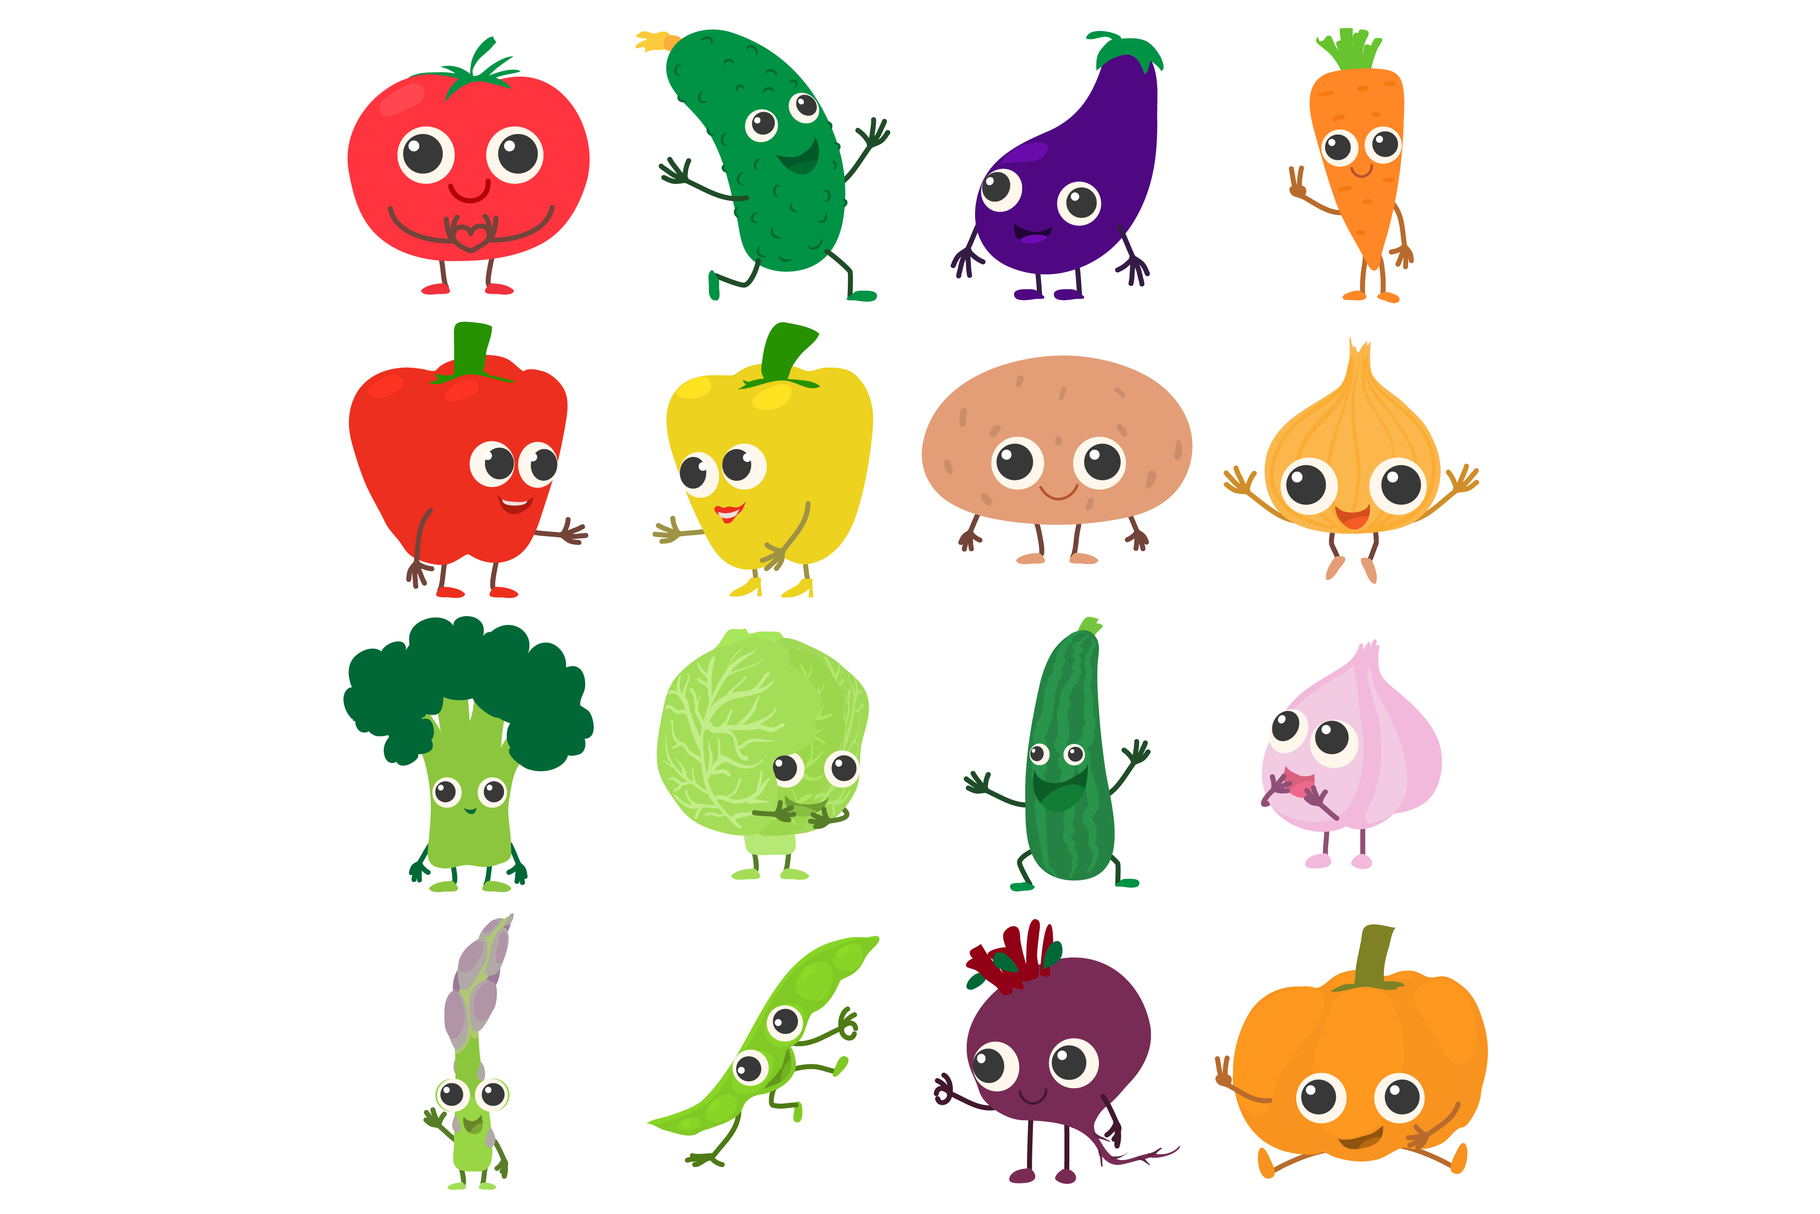 Smiling vegetables icons set, cartoon style example image 1